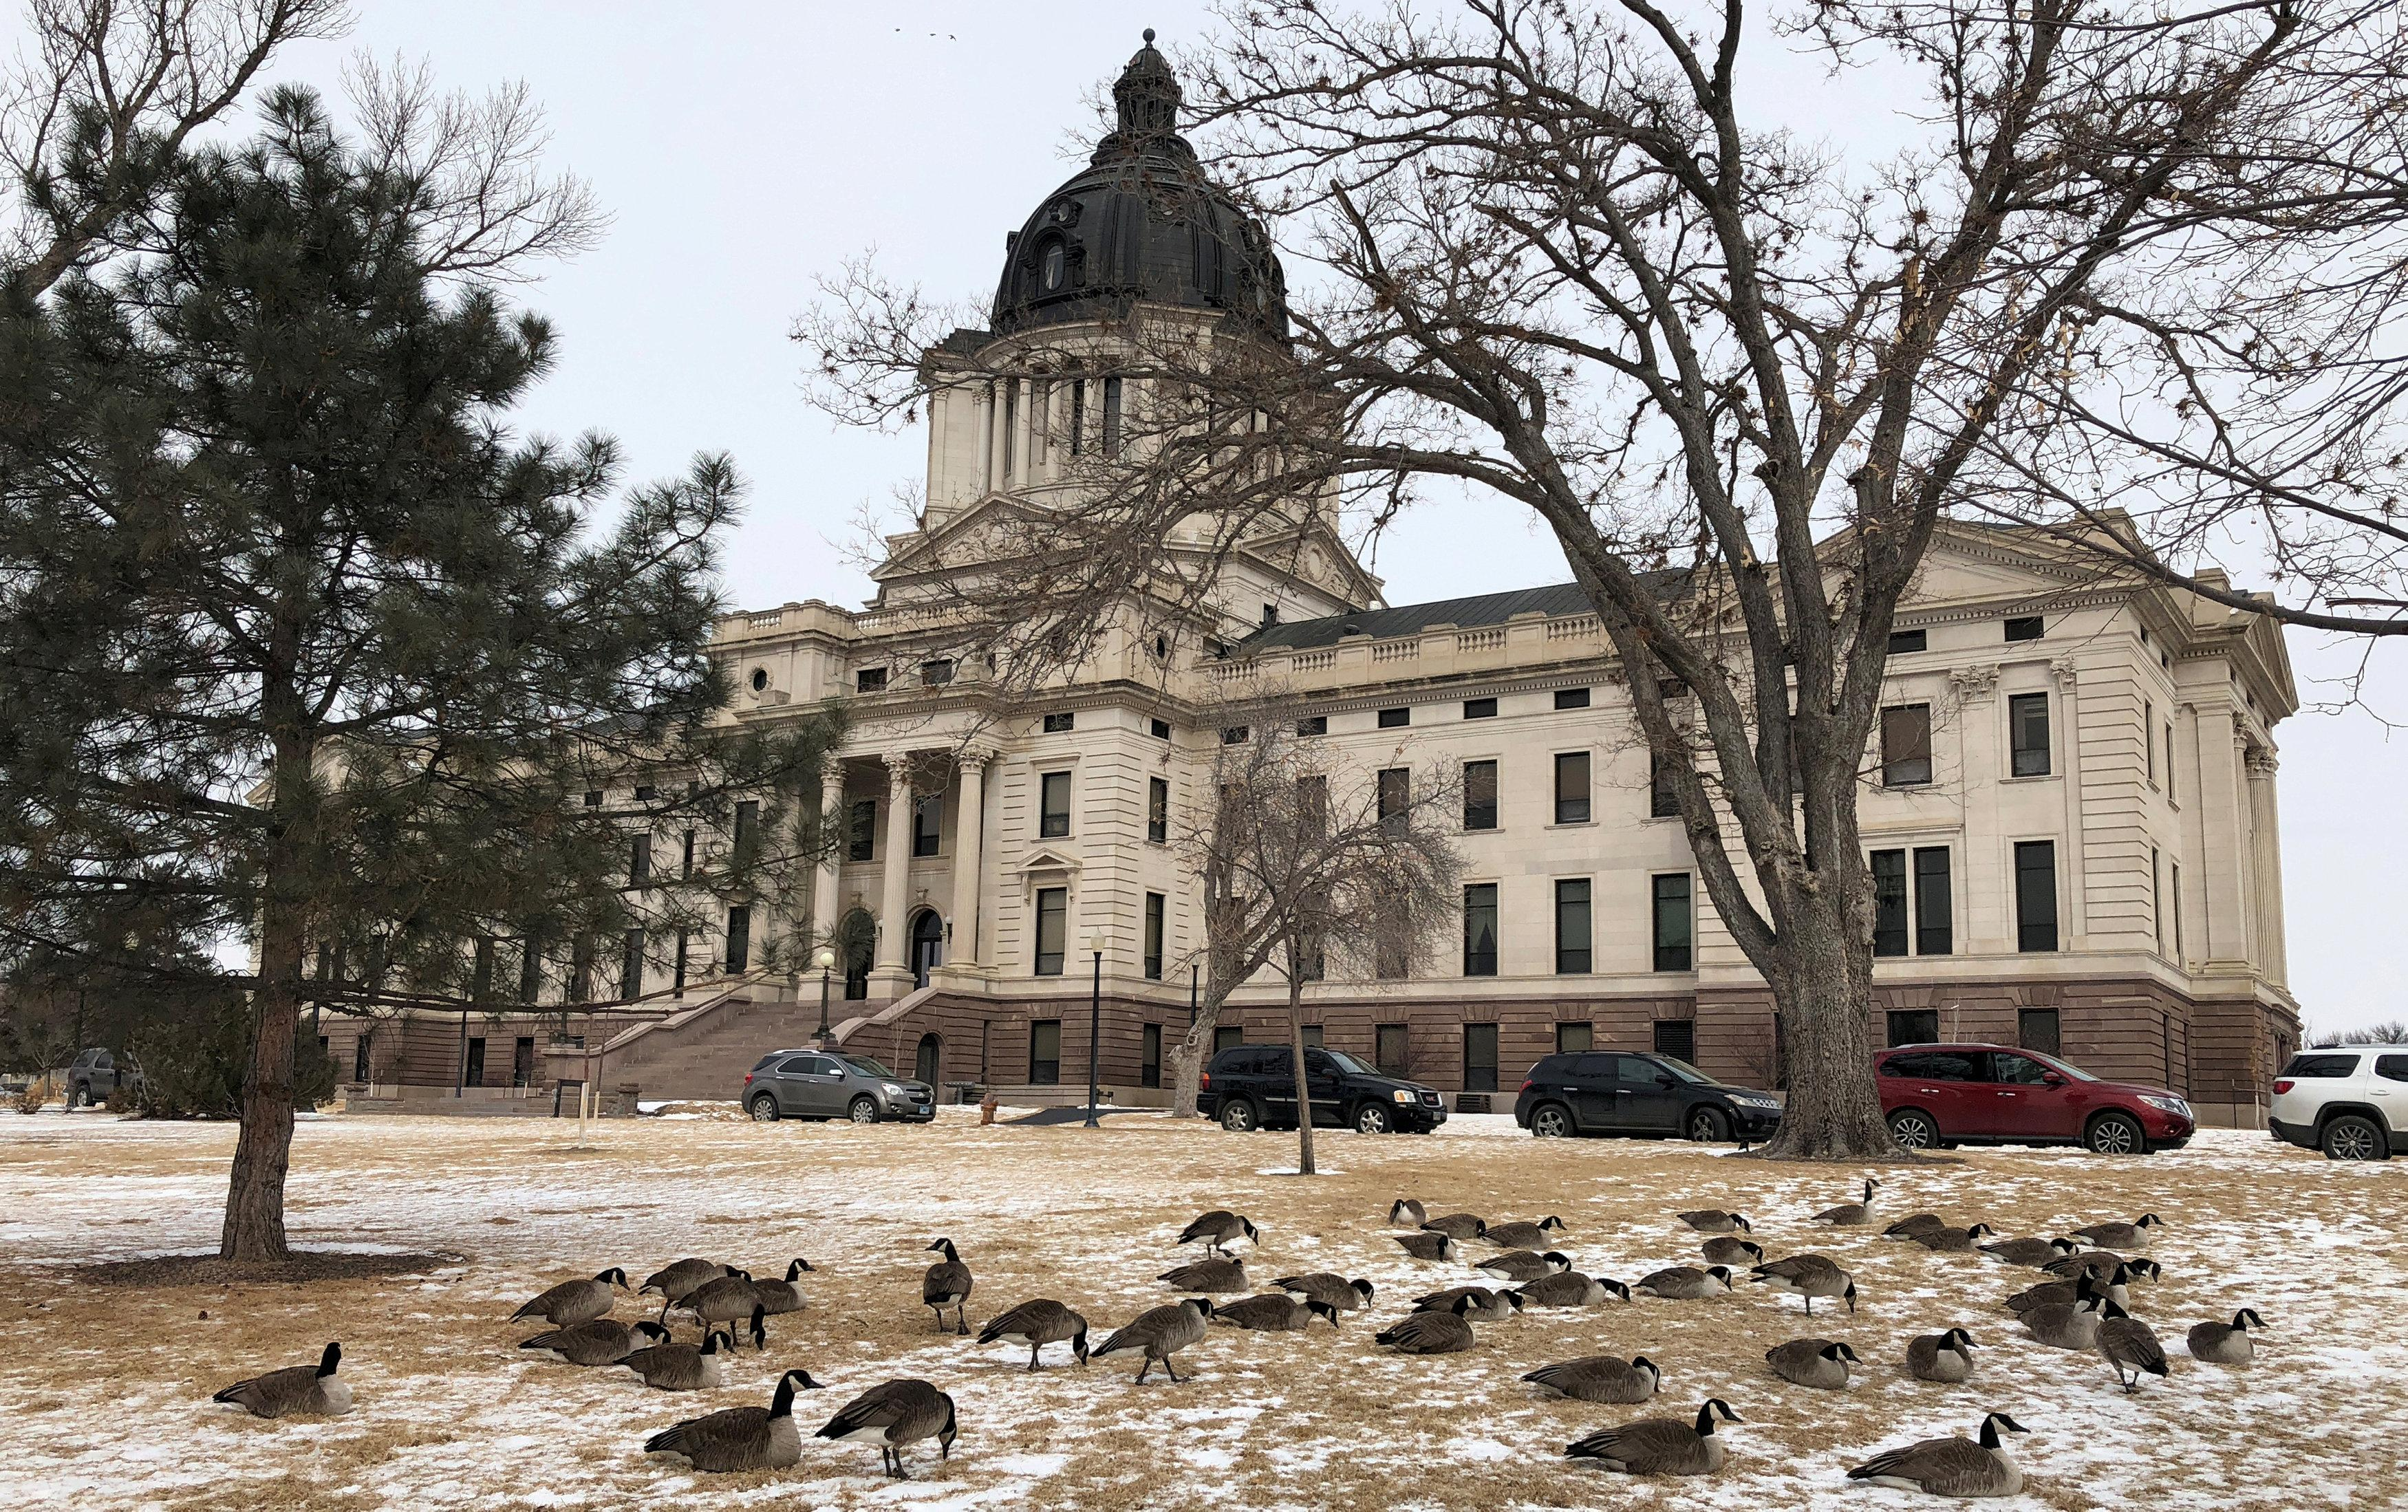 The South Dakota state capitol building is seen in Pierre, South Dakota, U.S., February 7, 2018.  Lawrence Hurley